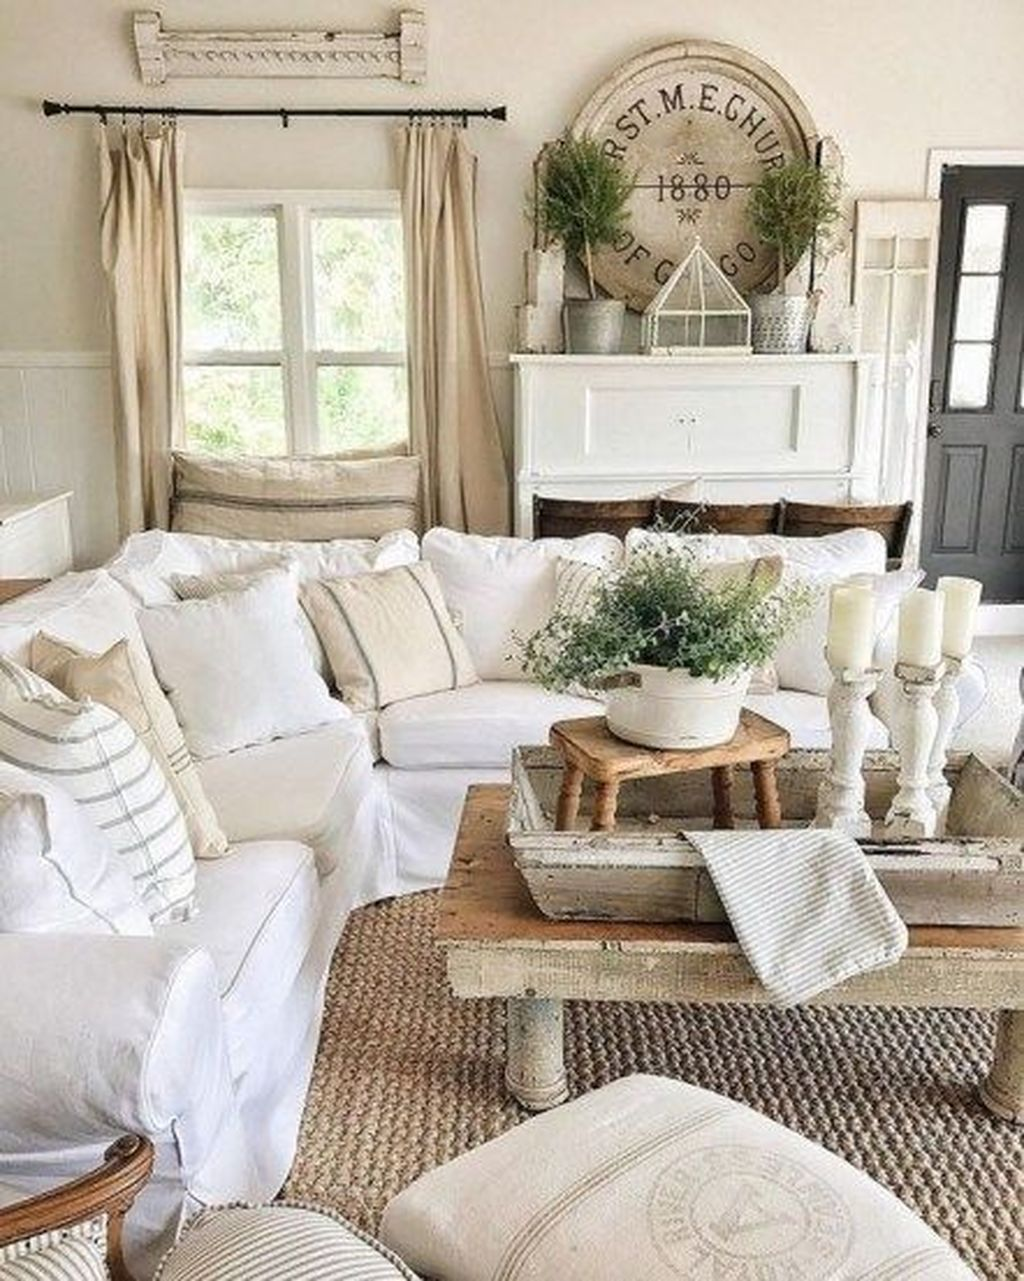 Admirable Farmhouse Living Room Decor Ideas 38